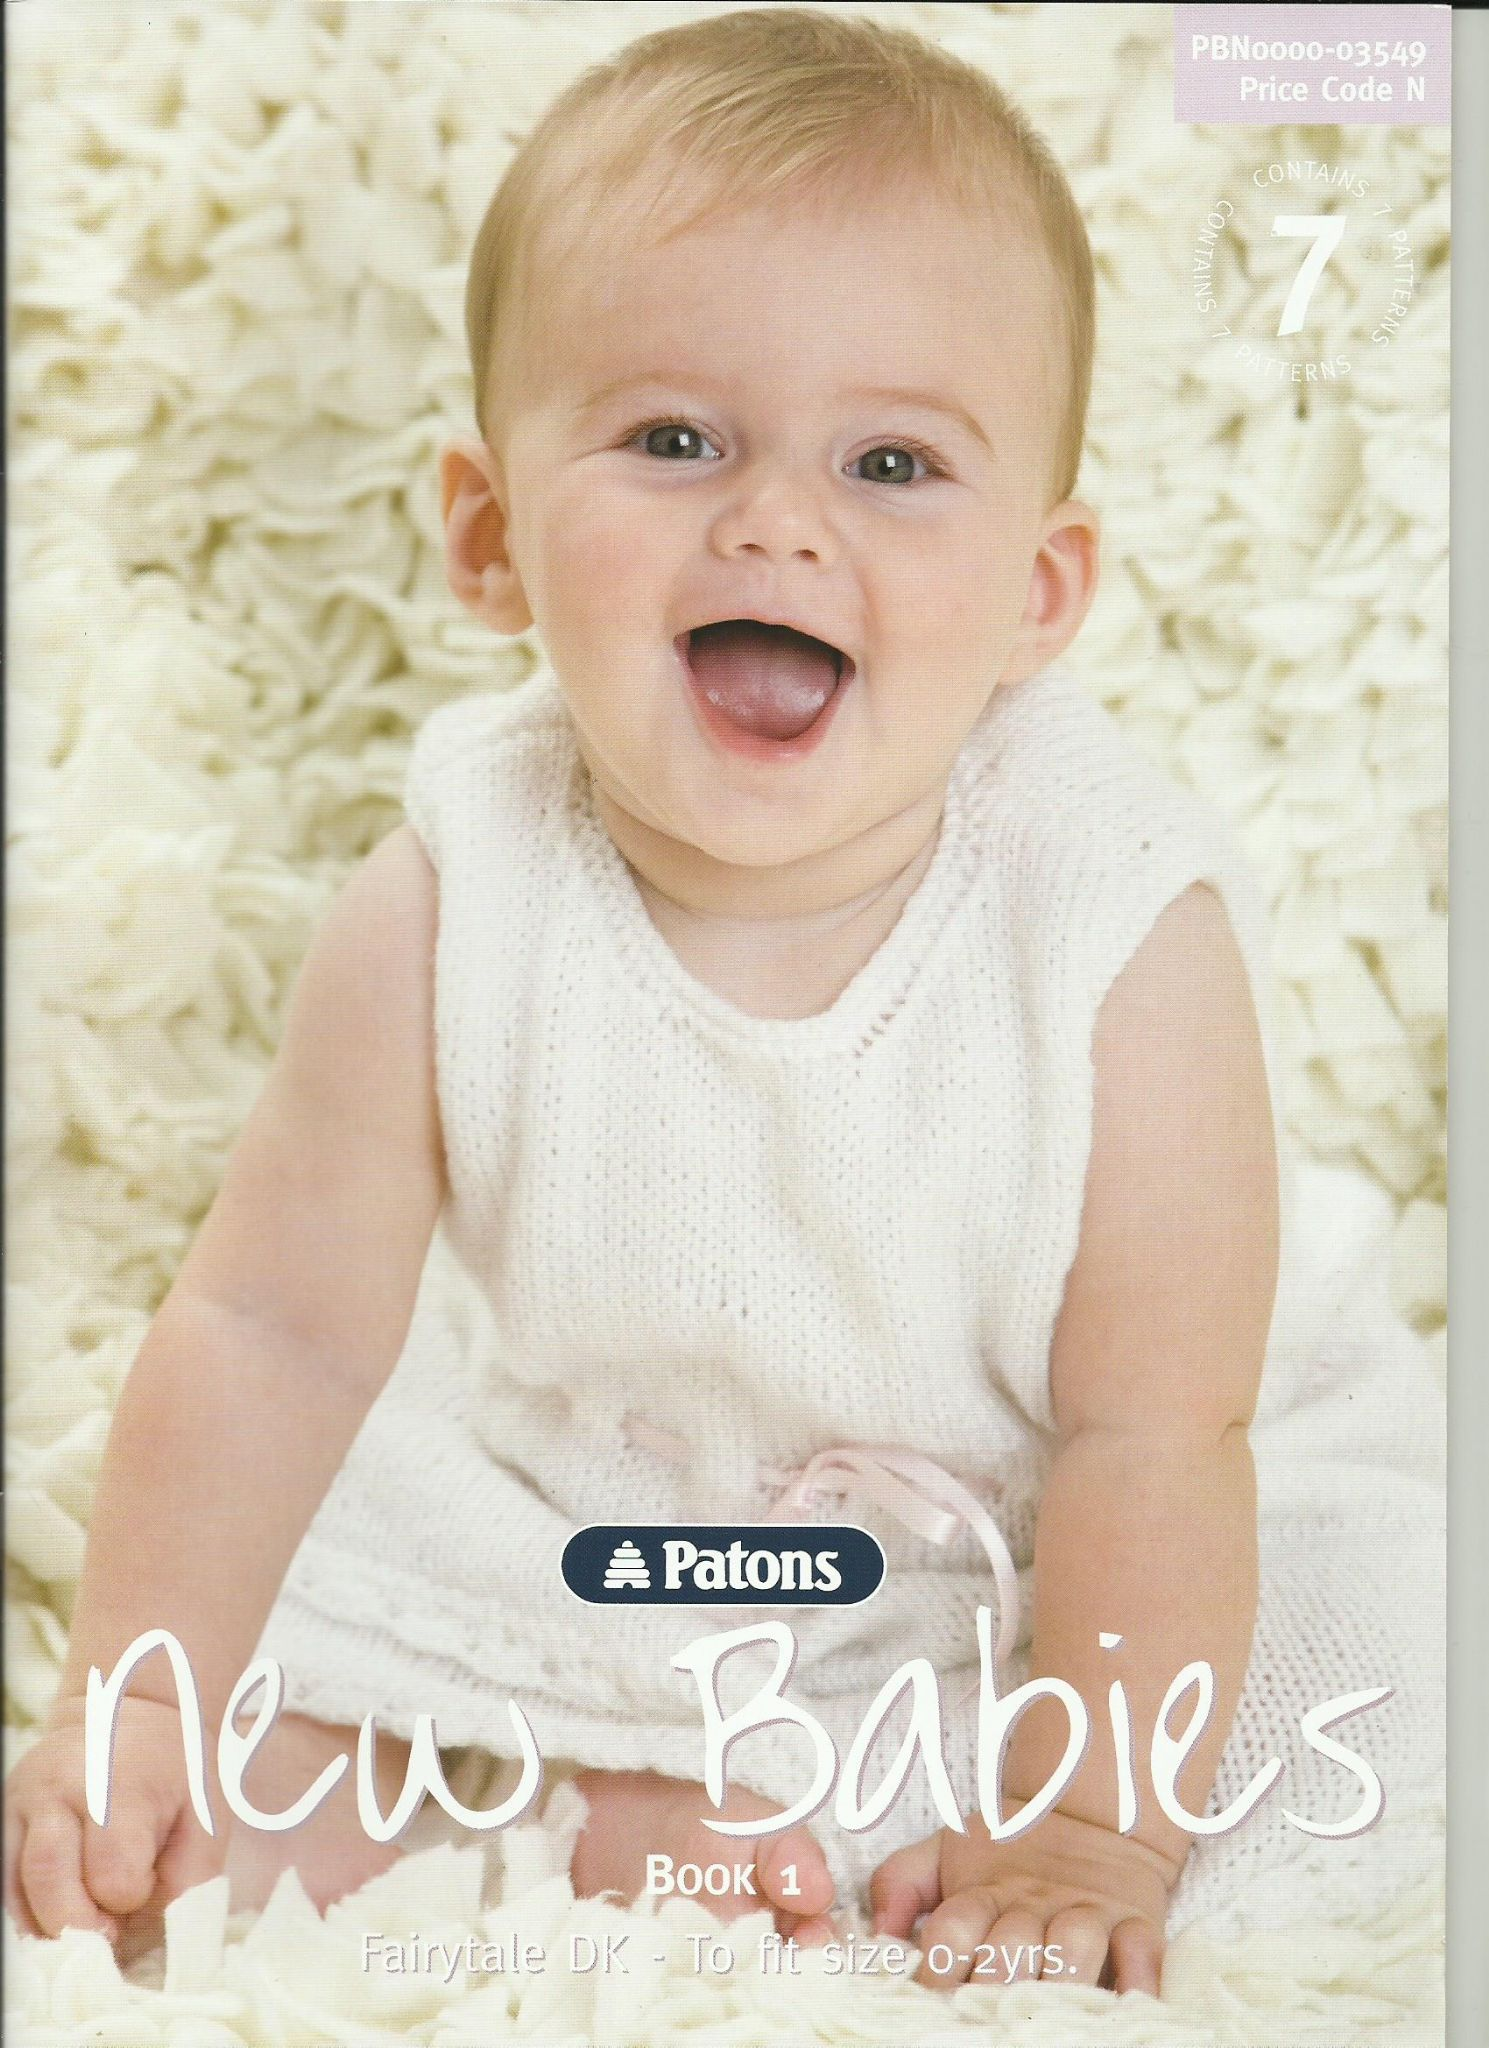 f740f54c777 Patons New Babies Book 1